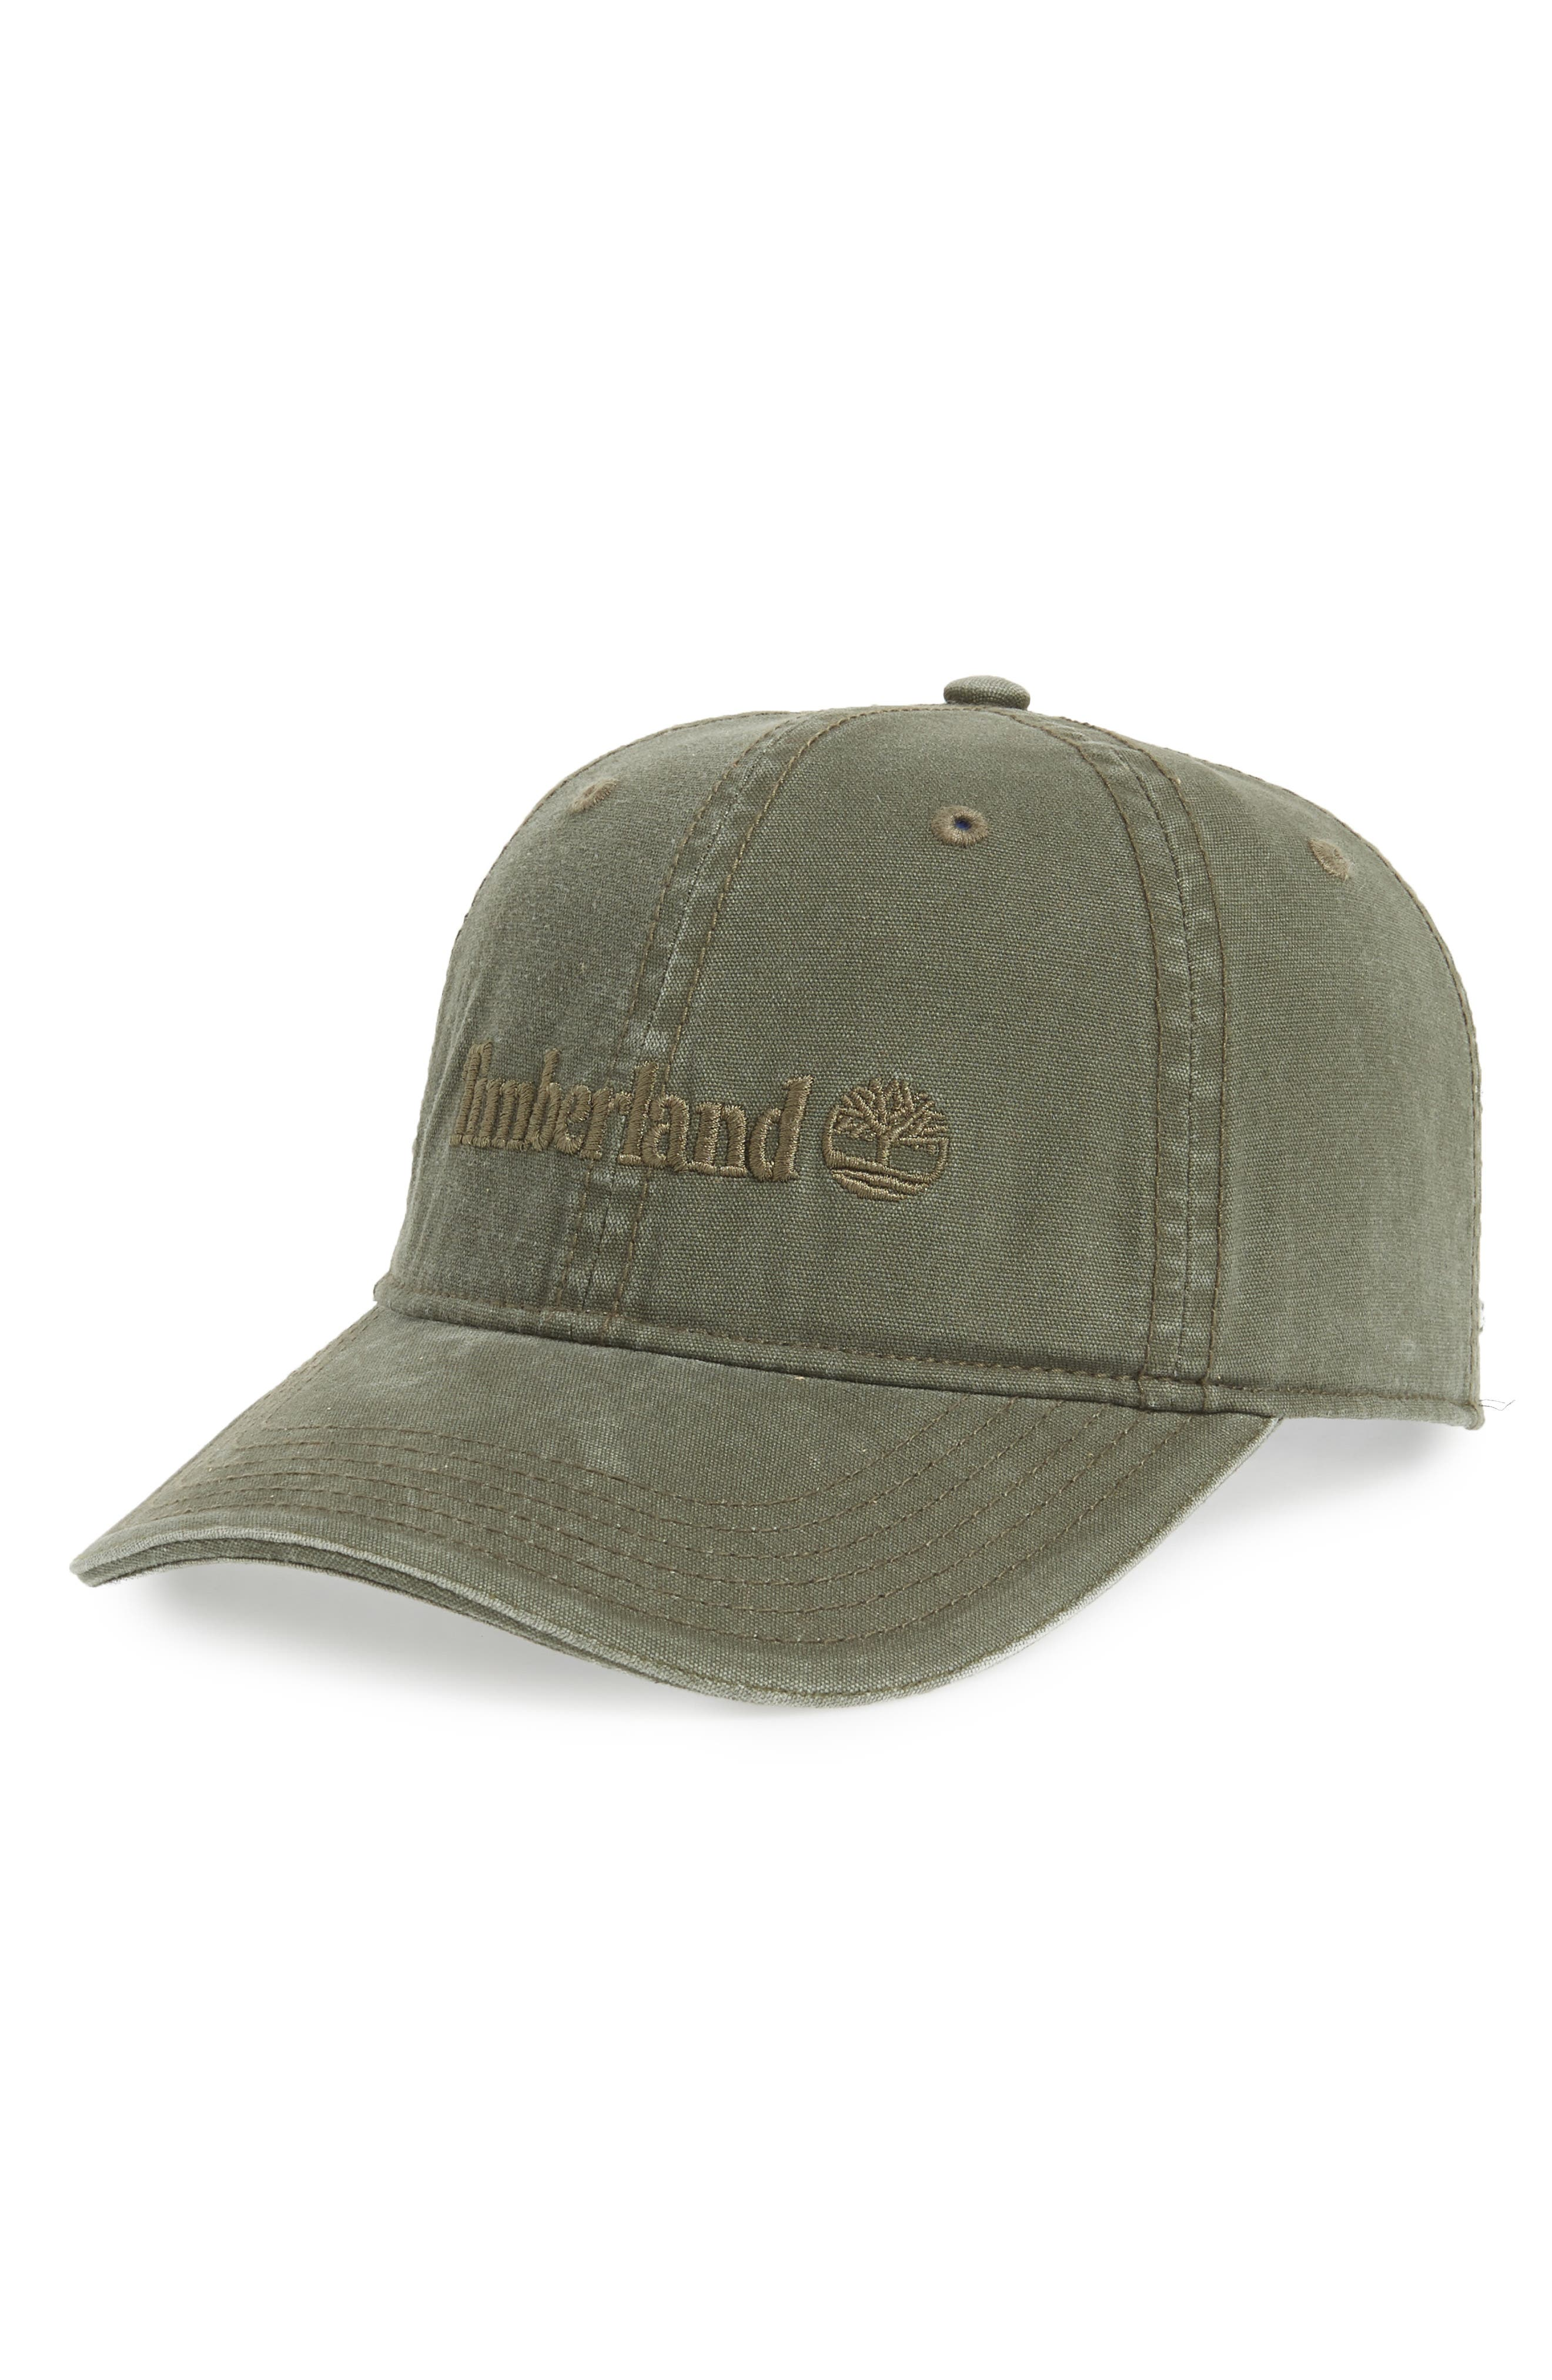 Southport Beach Baseball Cap,                         Main,                         color, GRAPE LEAF